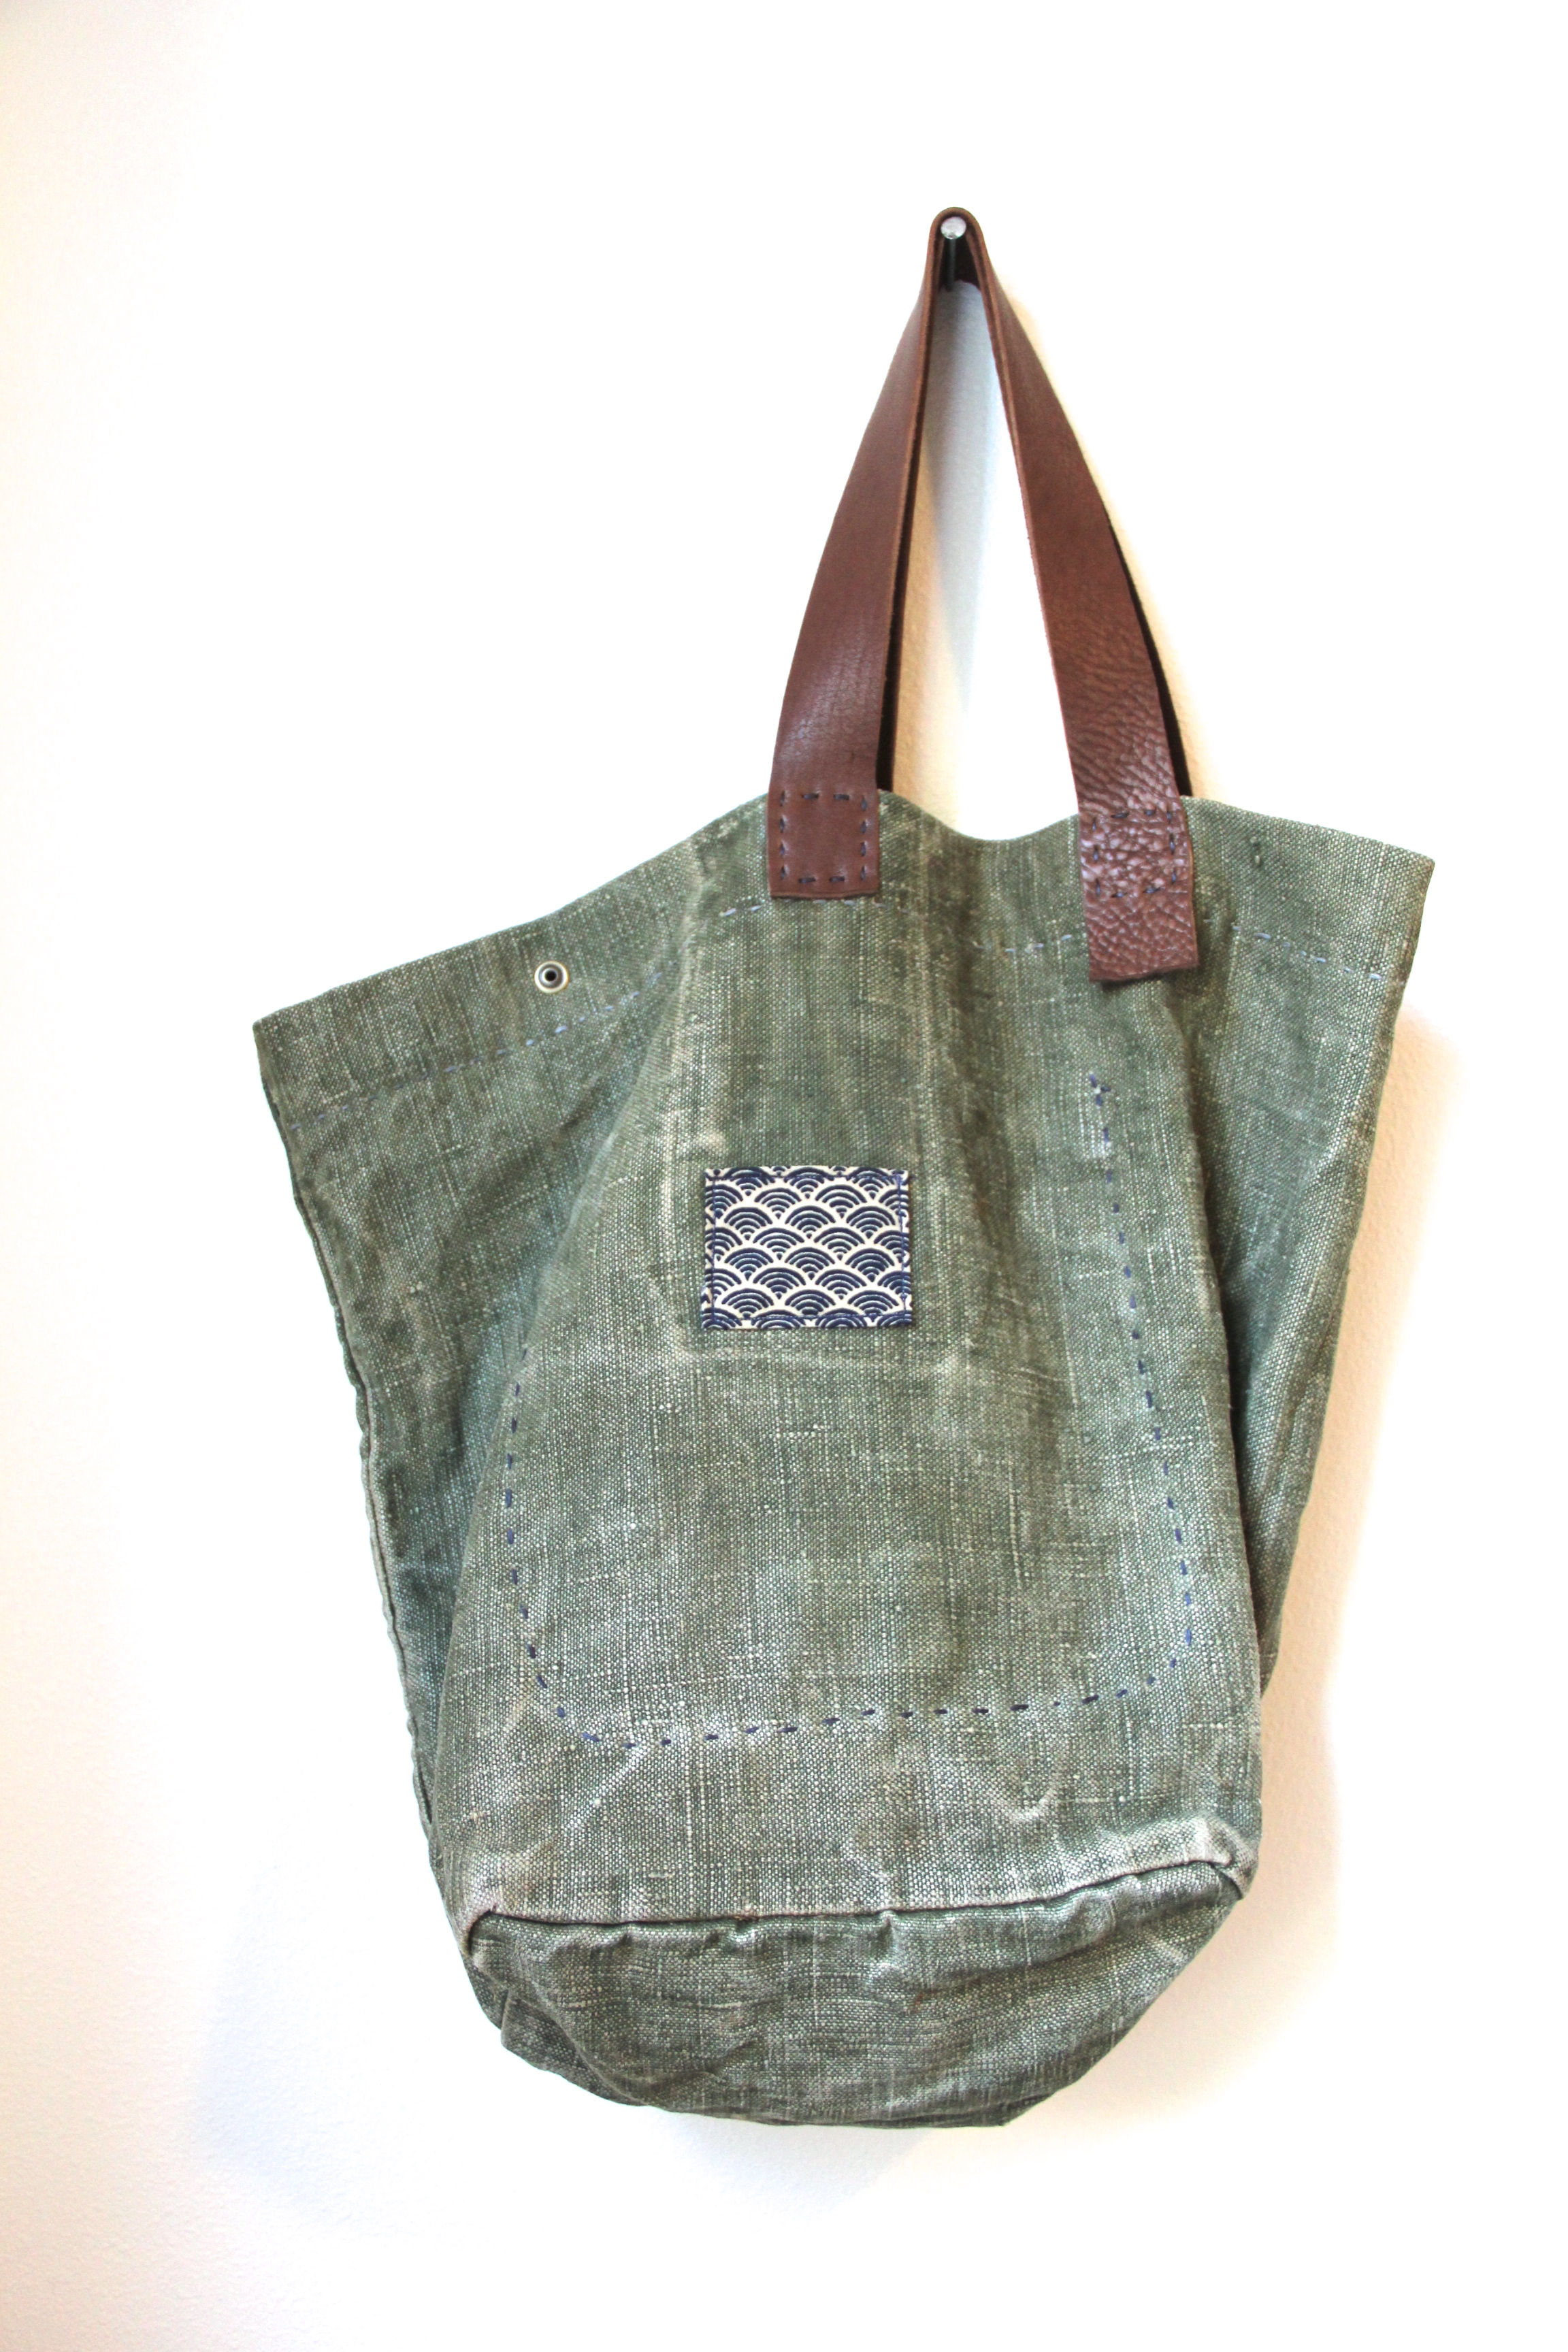 Headland Trails Tote - Back View